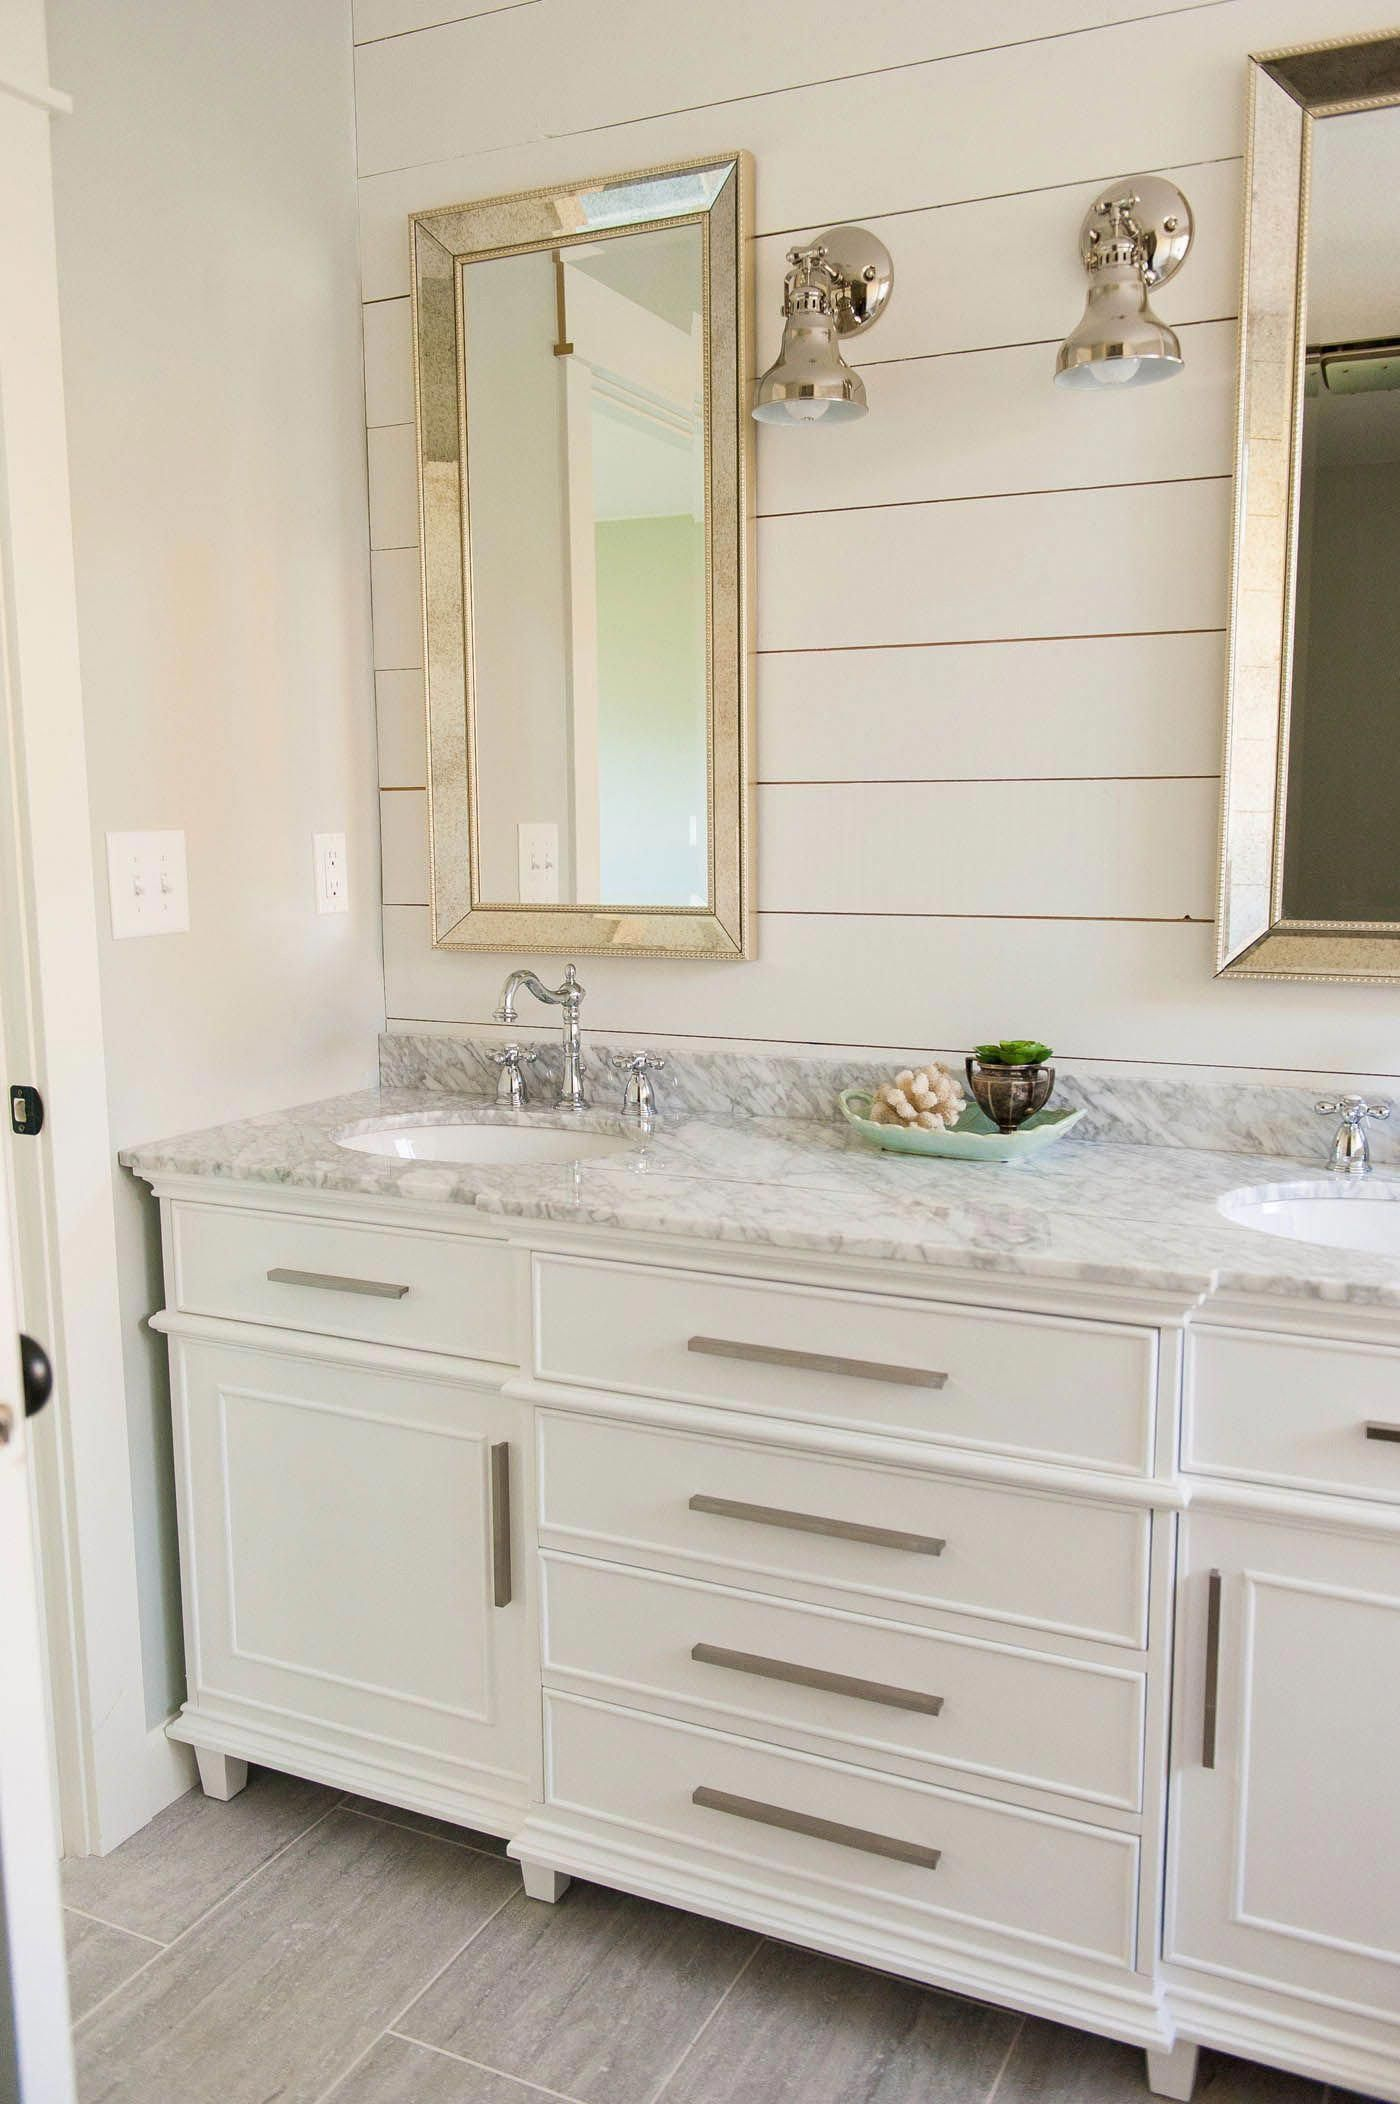 Get rerouted right here Bathroom Update Ideas | Master ...